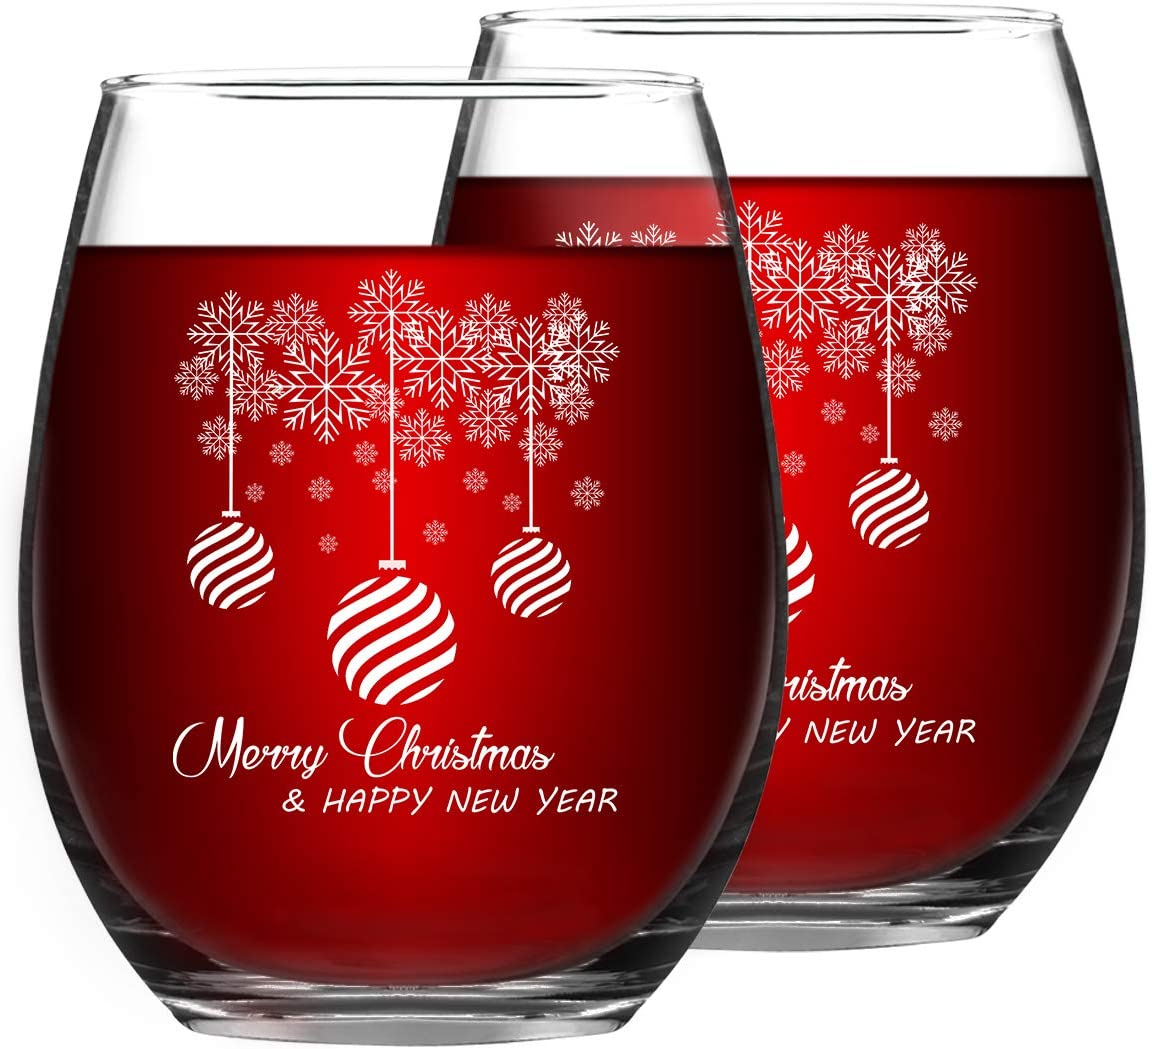 Merry Christmas and Happy New Year Stemless Wine Glass Set, 15 Oz Funny Stemless Wine Glasses for Women Friends Men, Gift Idea for Christmas Wedding Party, Set of 2